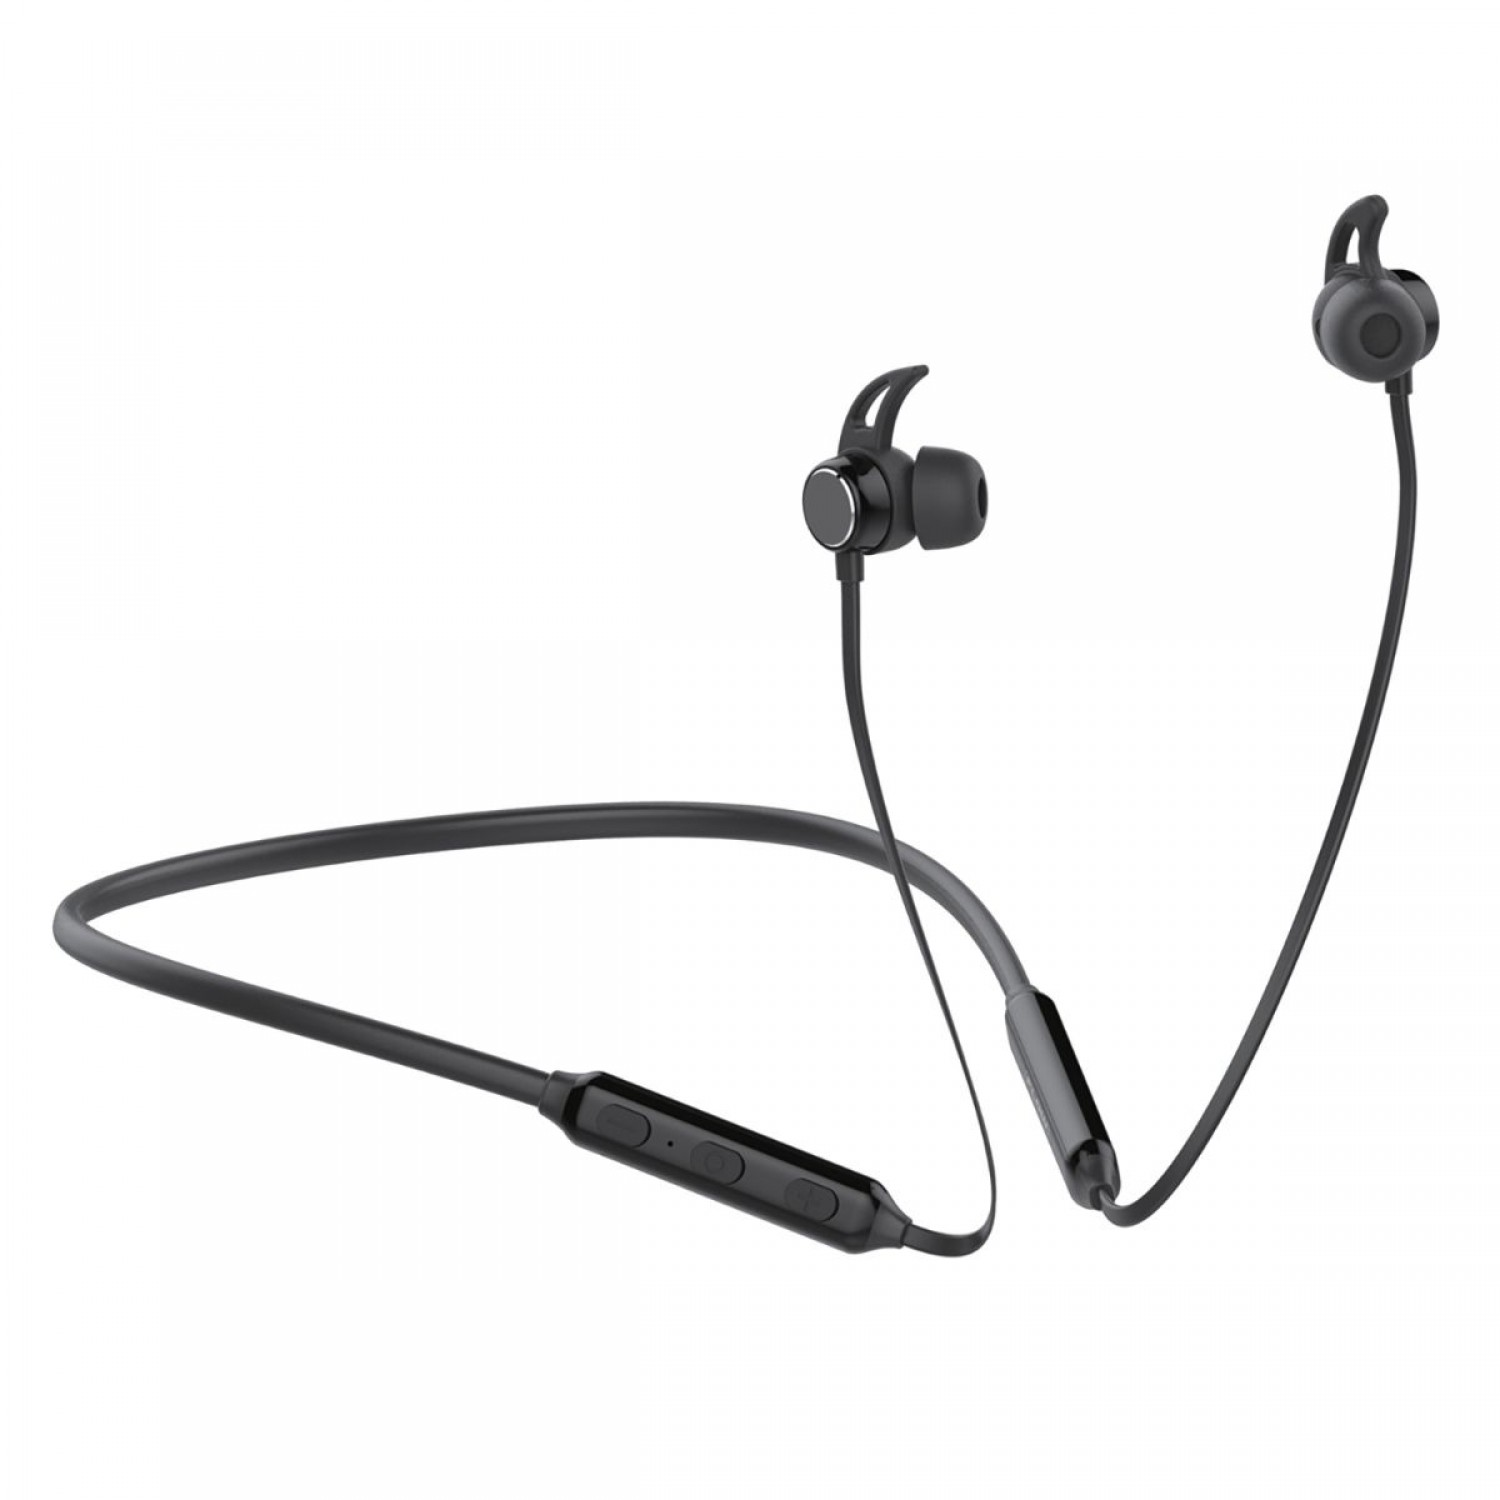 Promate Wireless Headphone, Lightweight IPX4 Water-Resistant Bluetooth 5.0 Stereo Earphones with Built-In Mic, Multi-Point Pairing and Secure Fit Design for Gym, Running, Smartphones, Tablets, Flow